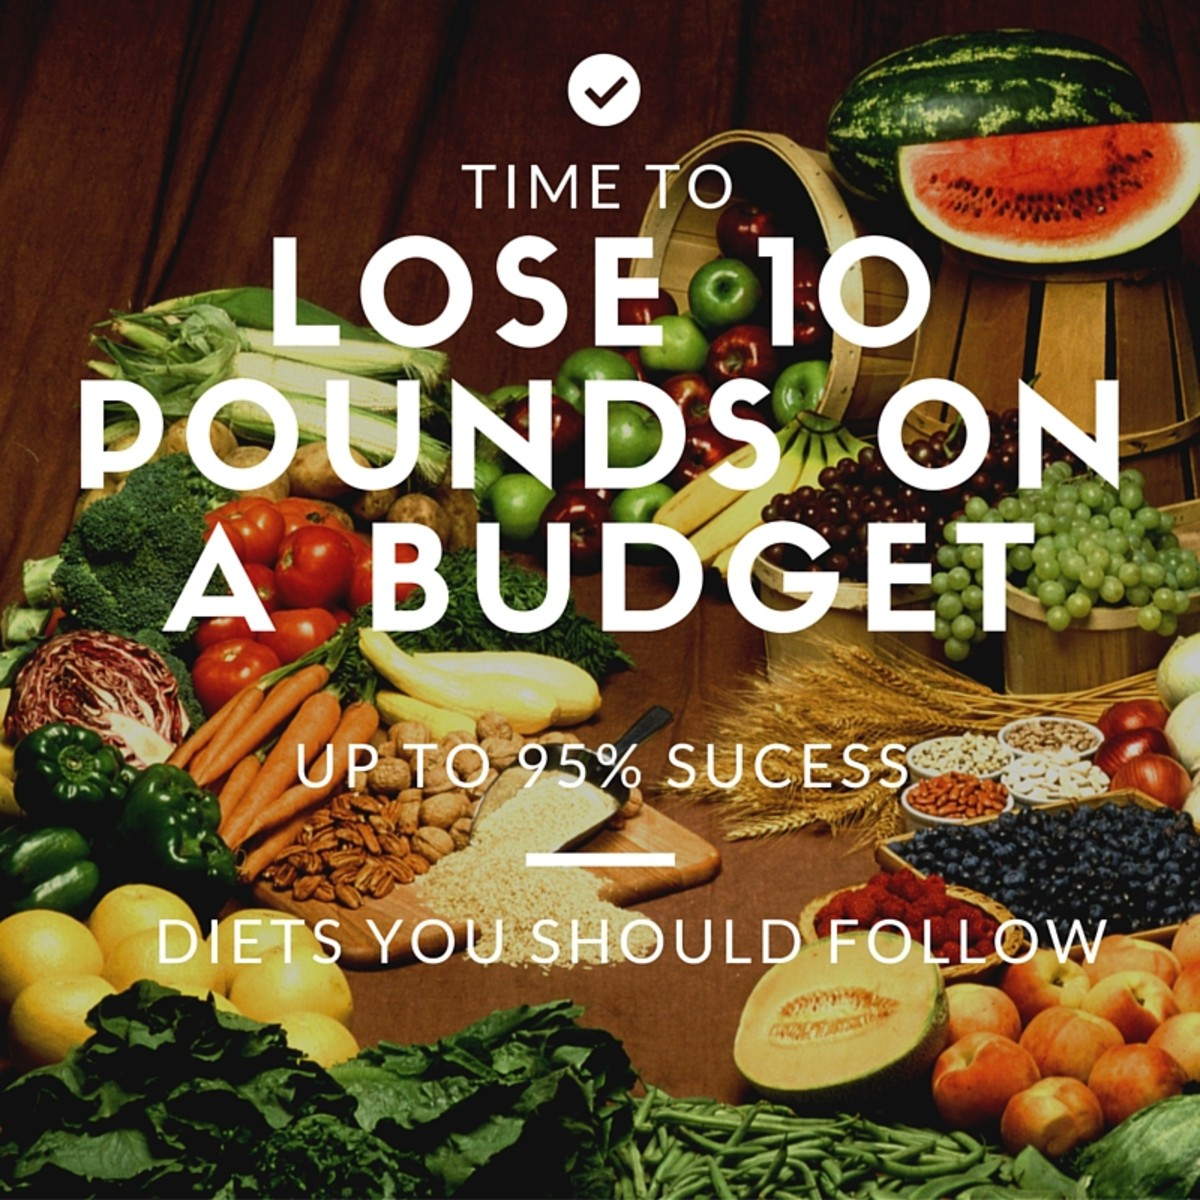 Uses these tip to lose 10 pounds easy.